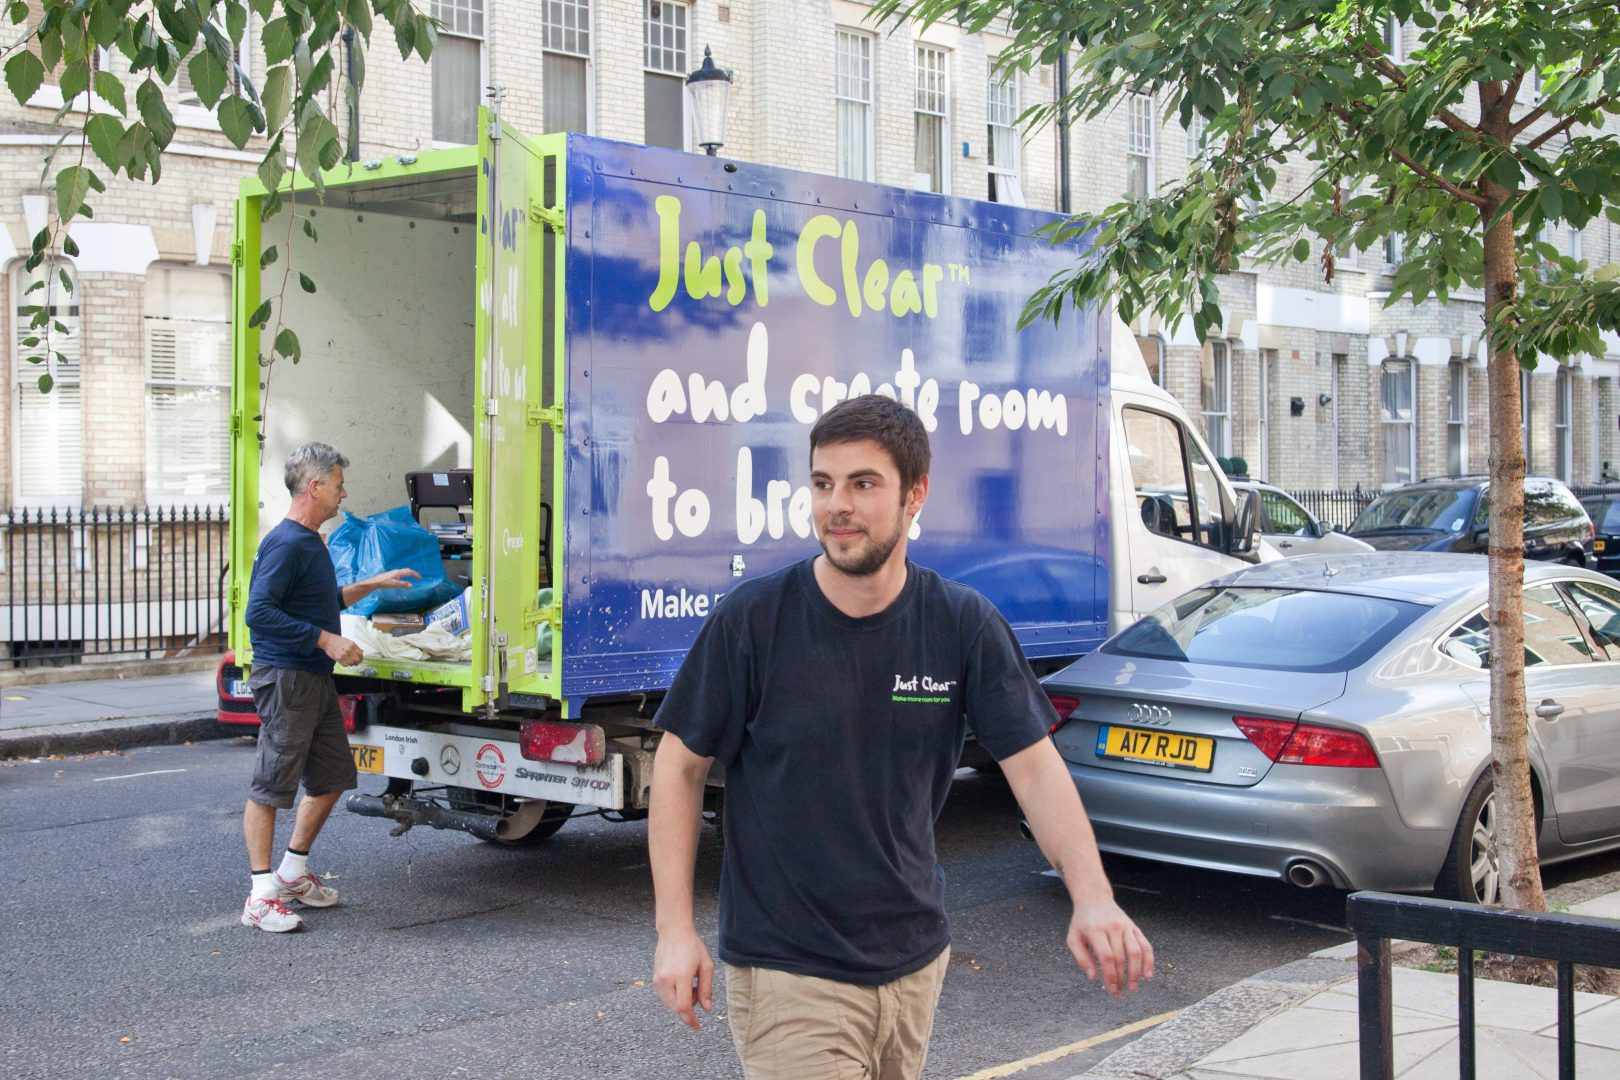 london clearance and rubbish removal services